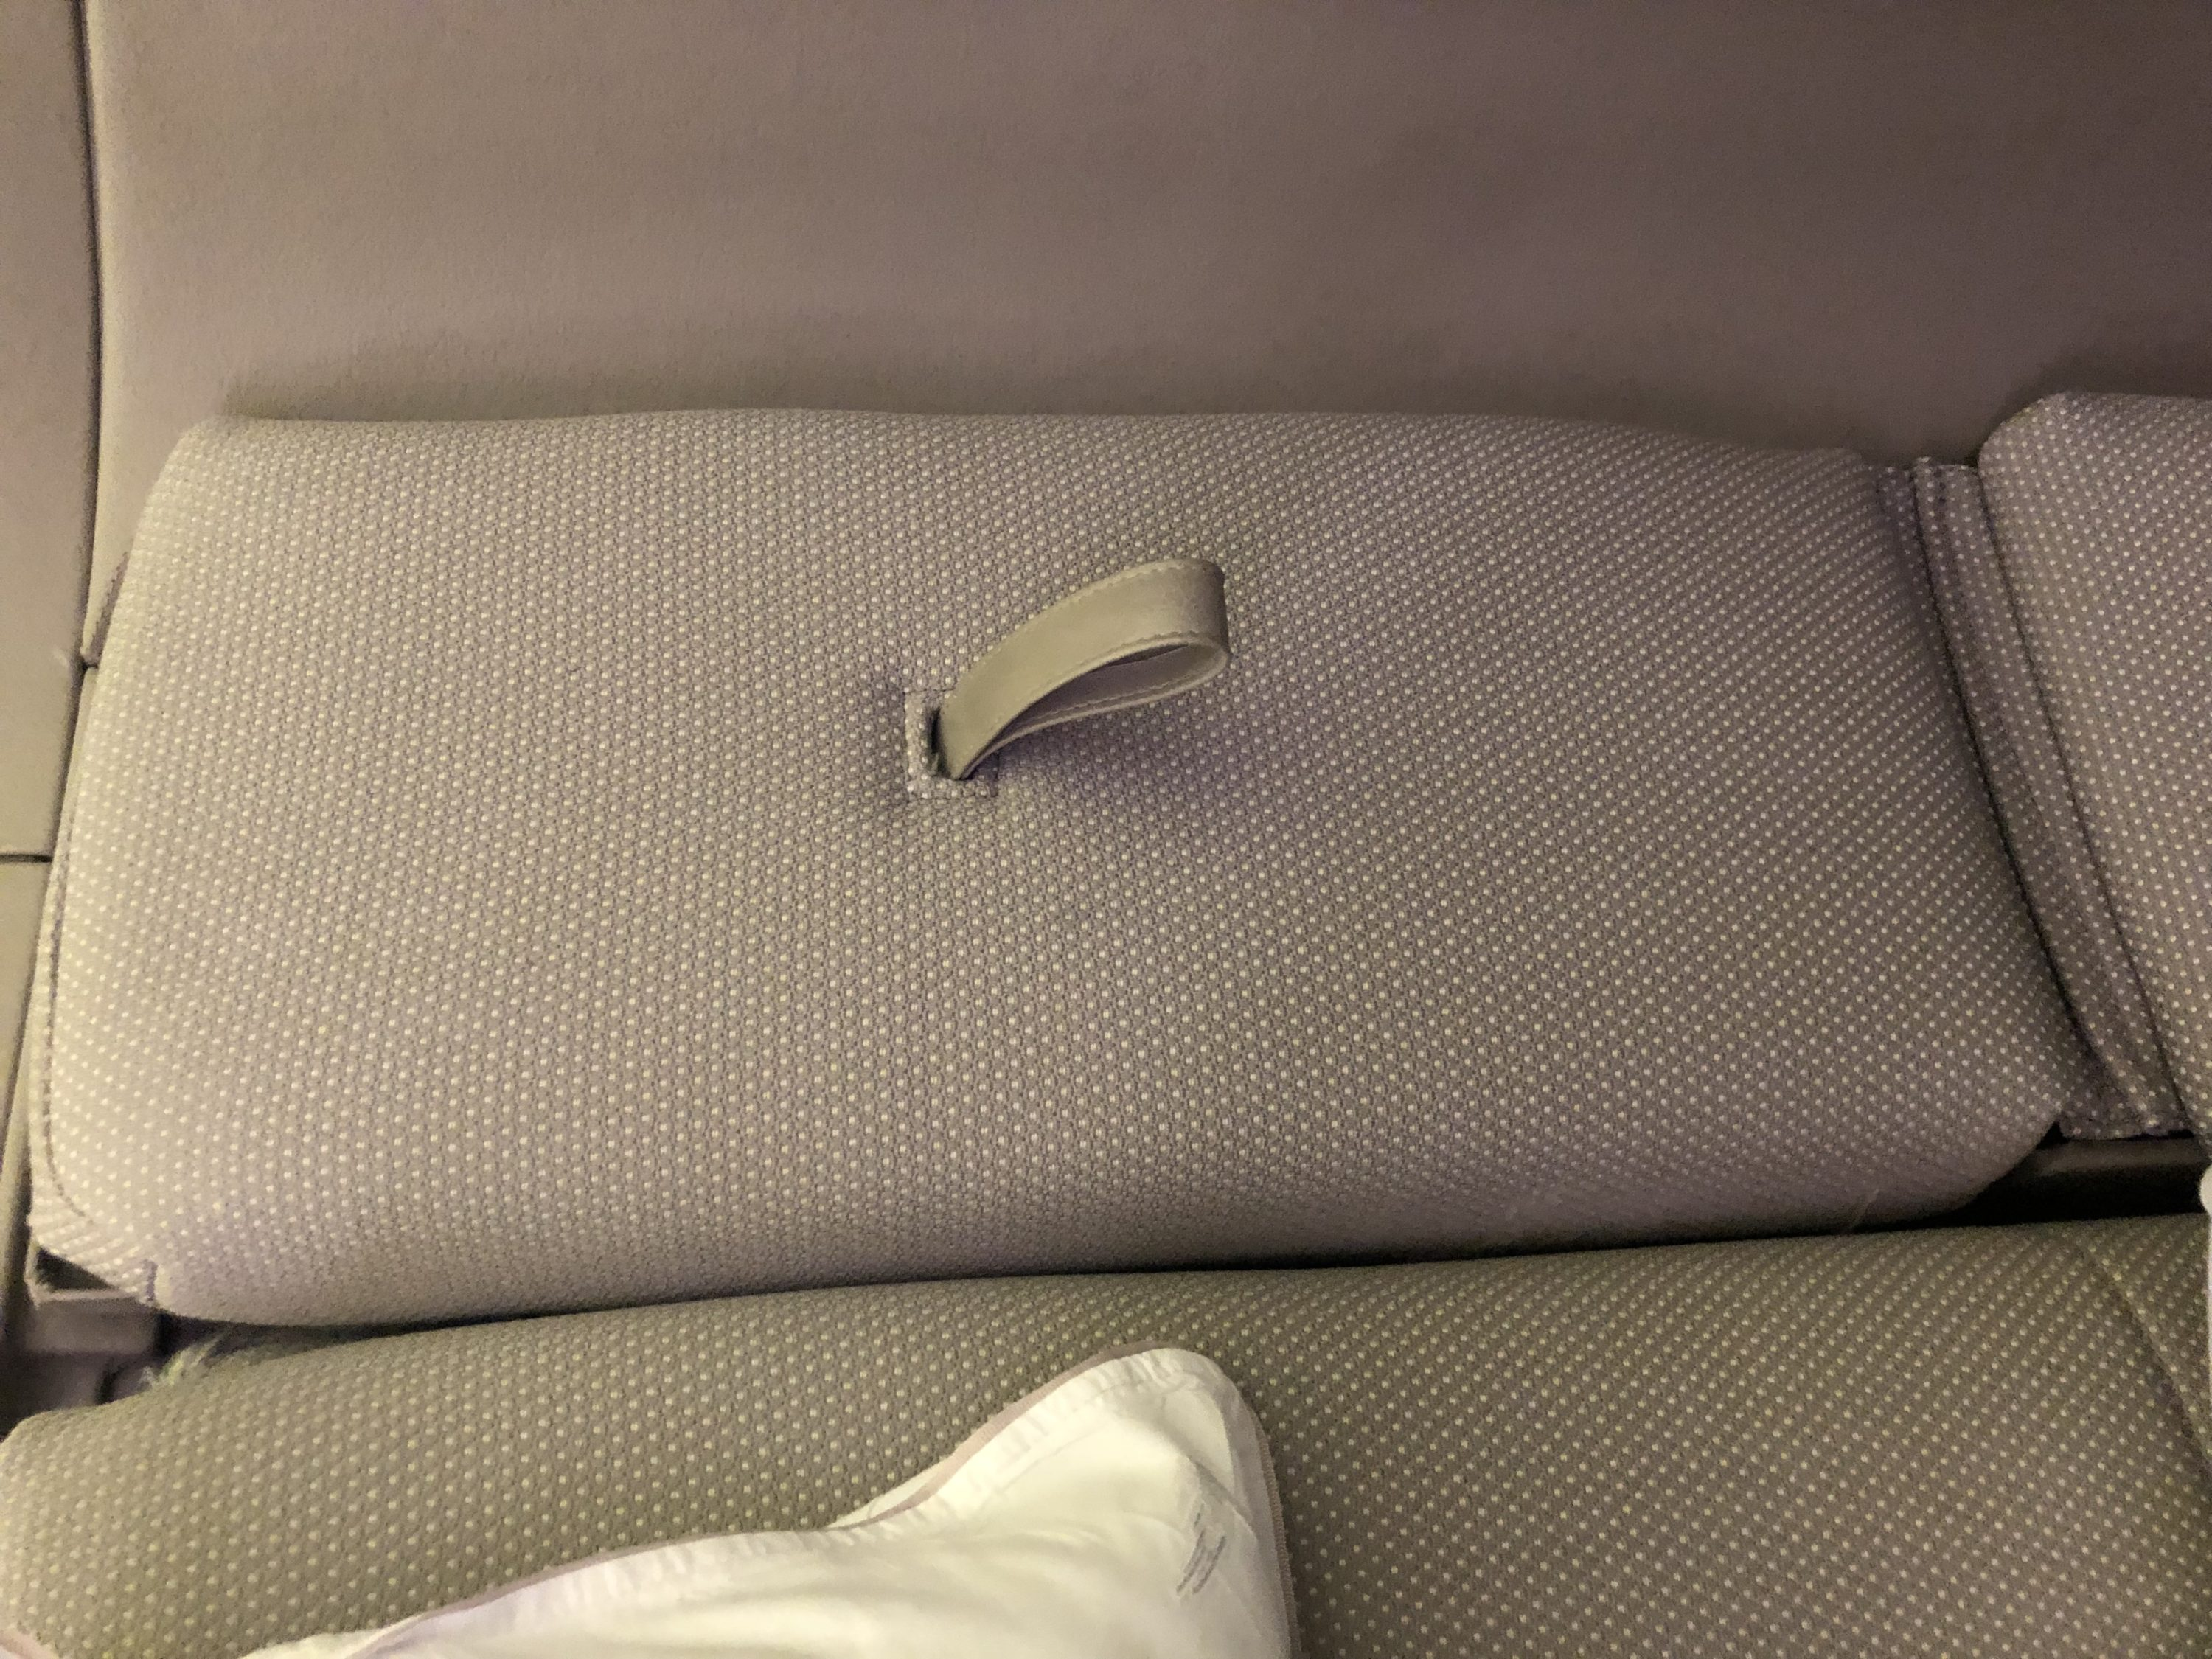 Cathay Pacific 777 First Class Review - HKG to SFO [Detailed]